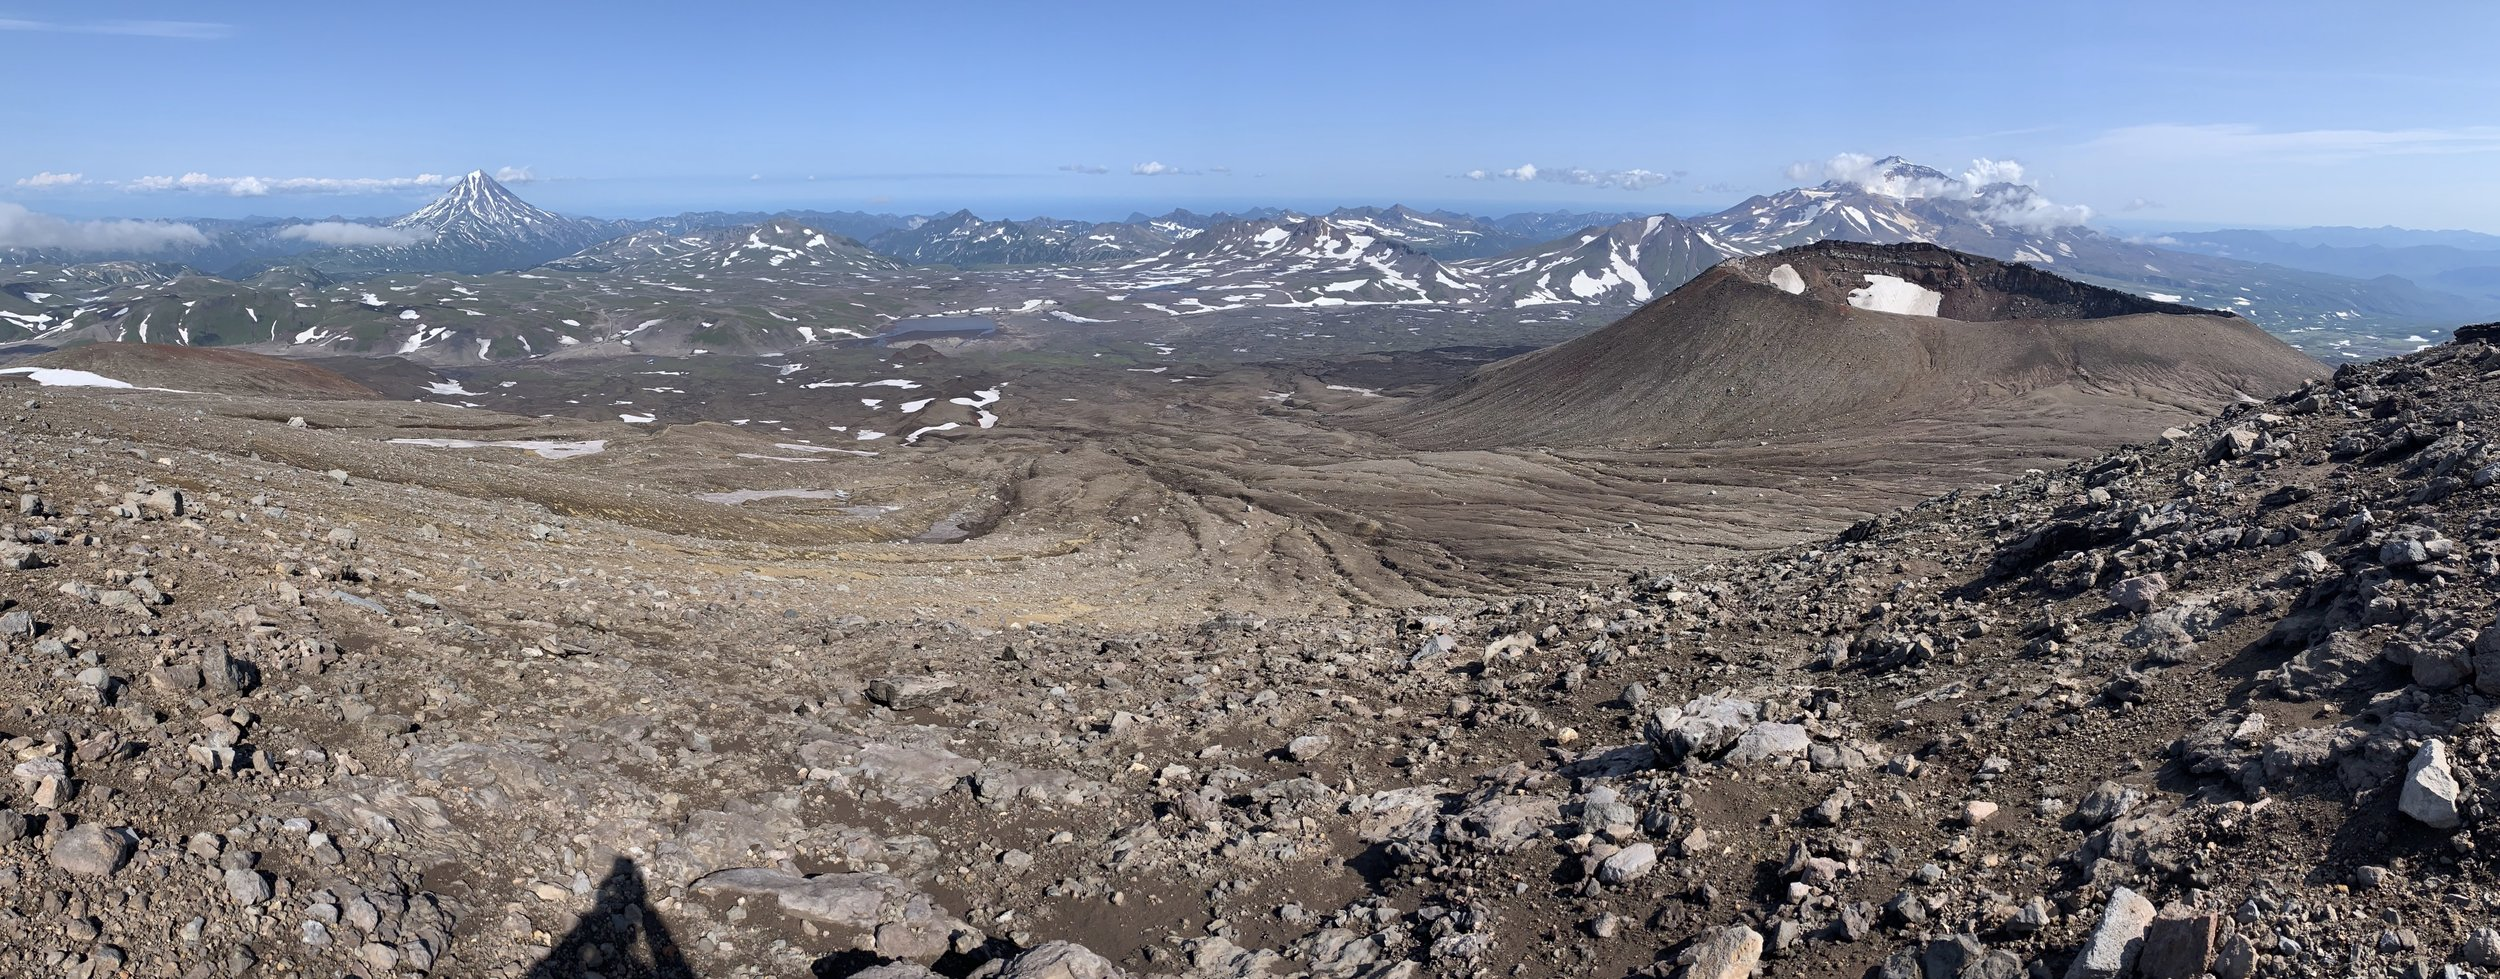 The view from the top of Gorely to the Mutnowsky Volcanic Plateau.